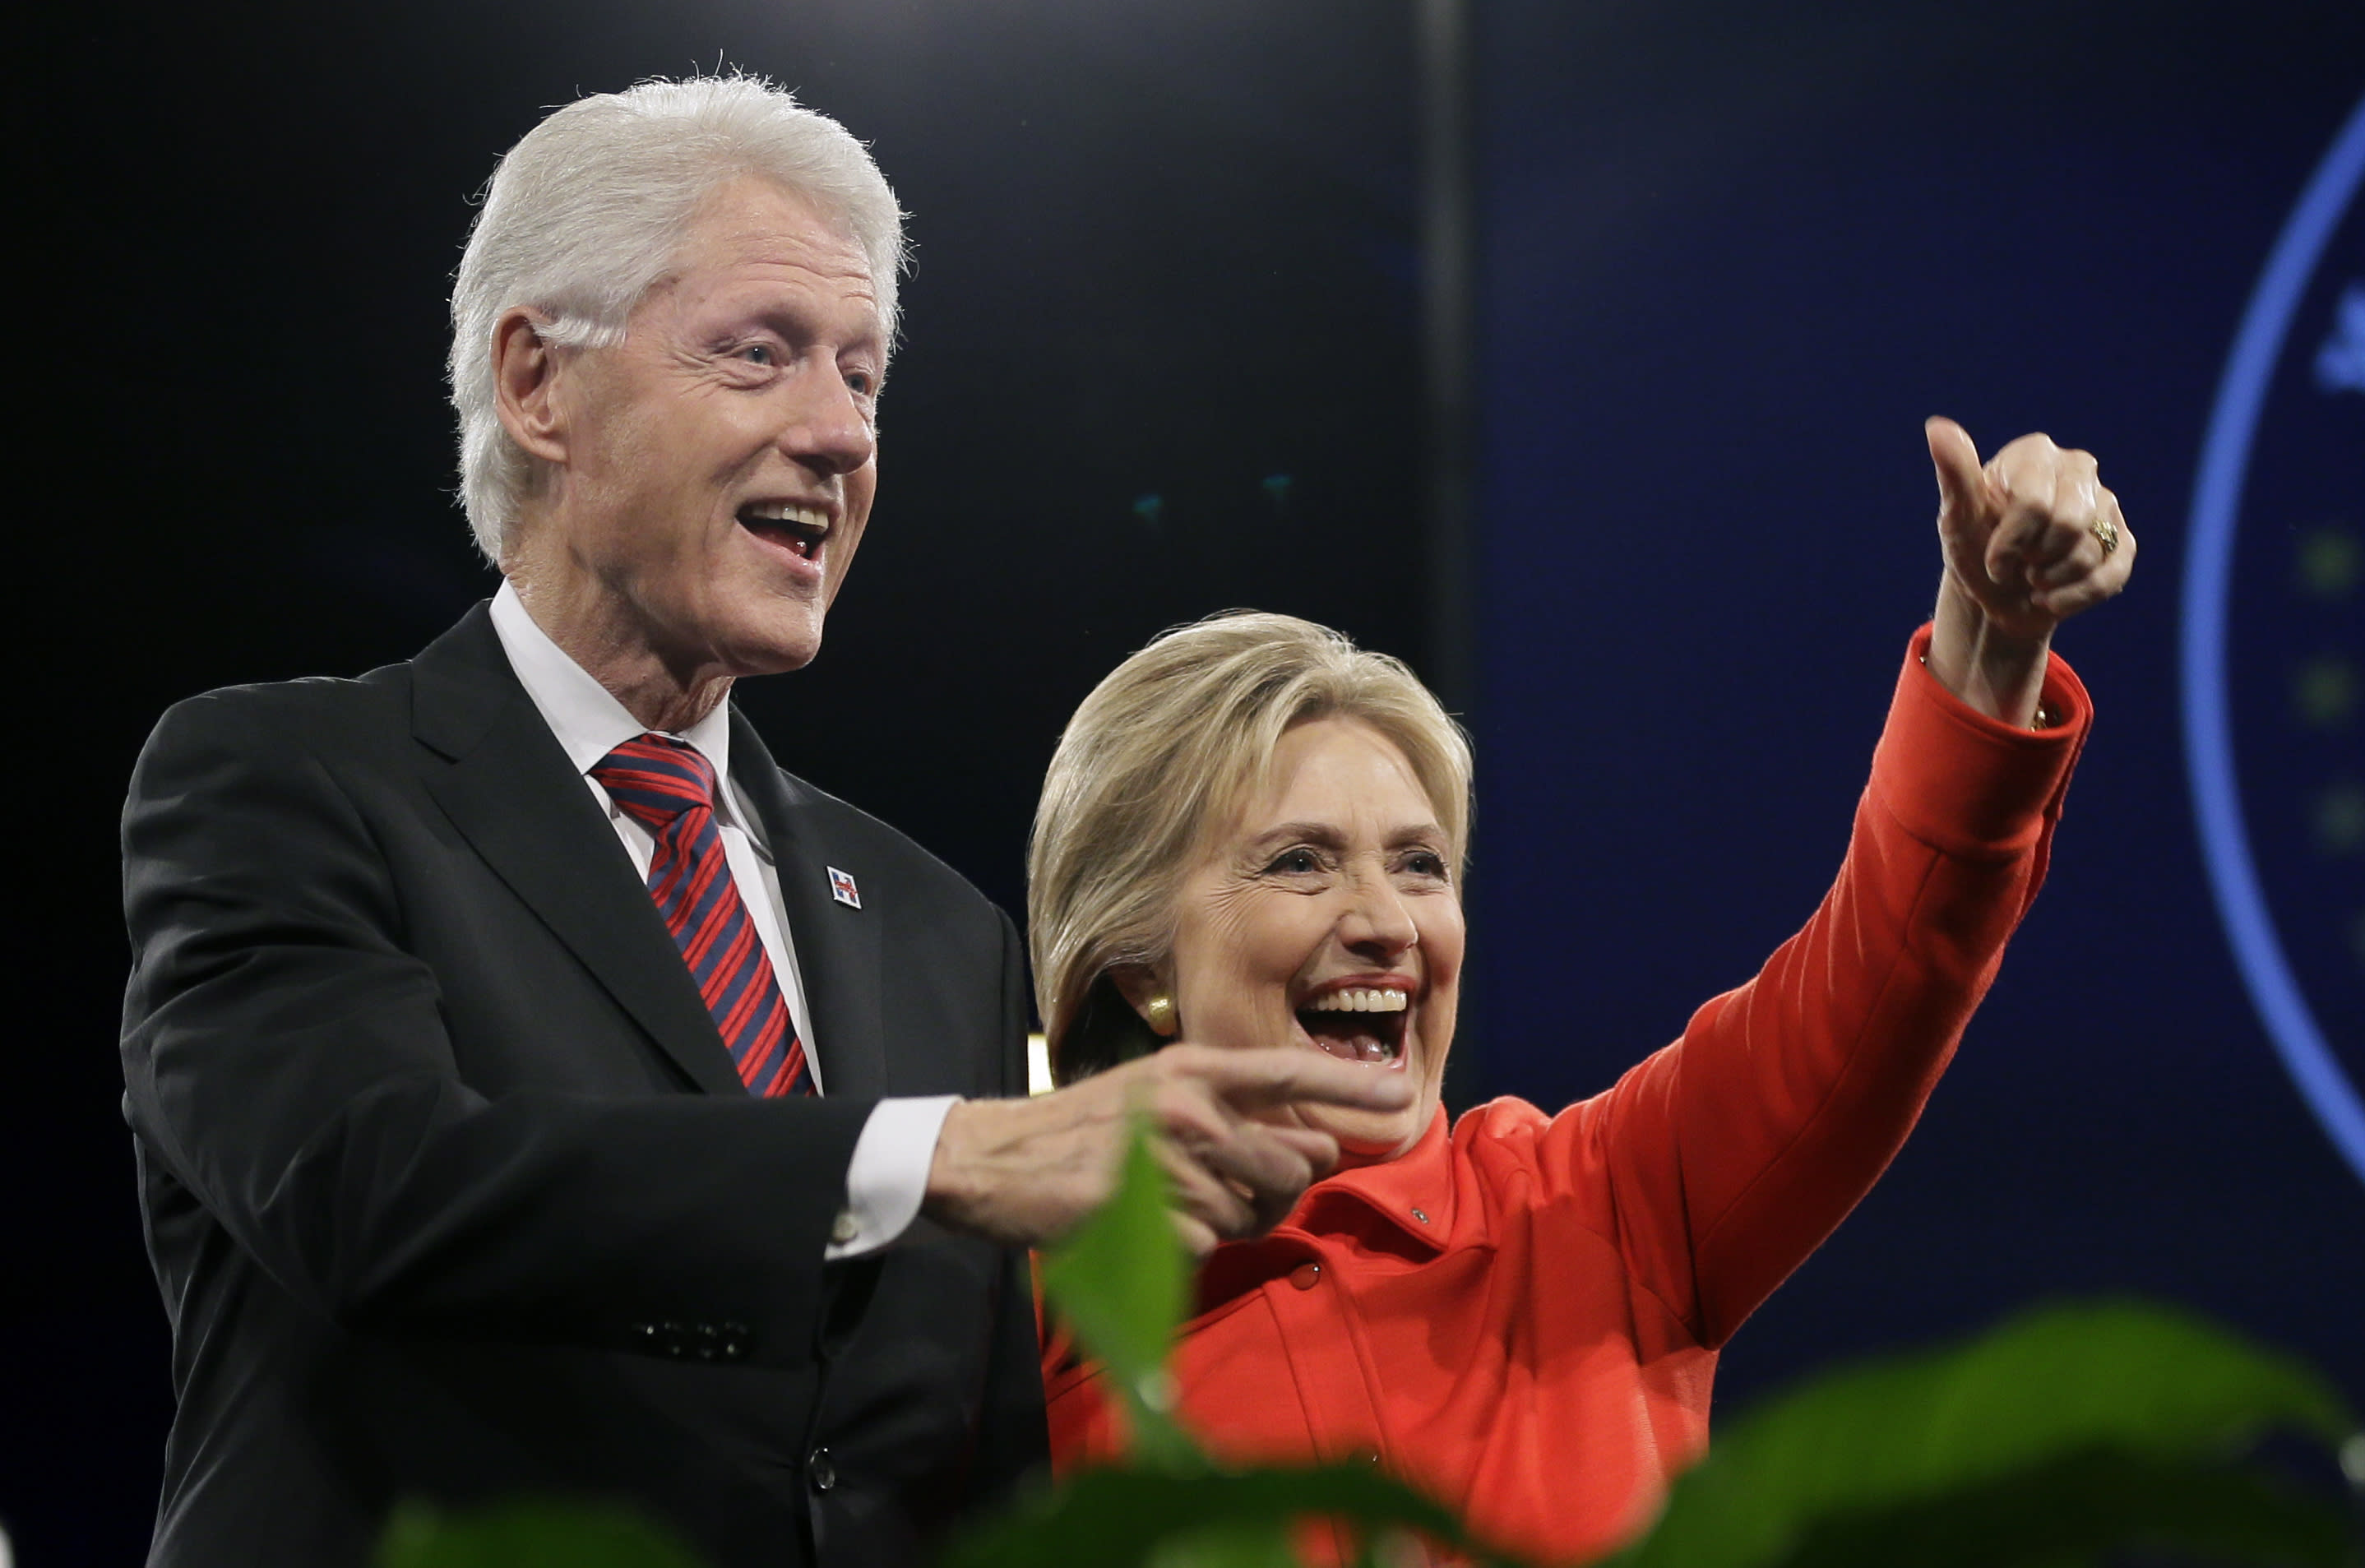 Since '01, Clintons collected $35M from financial businesses